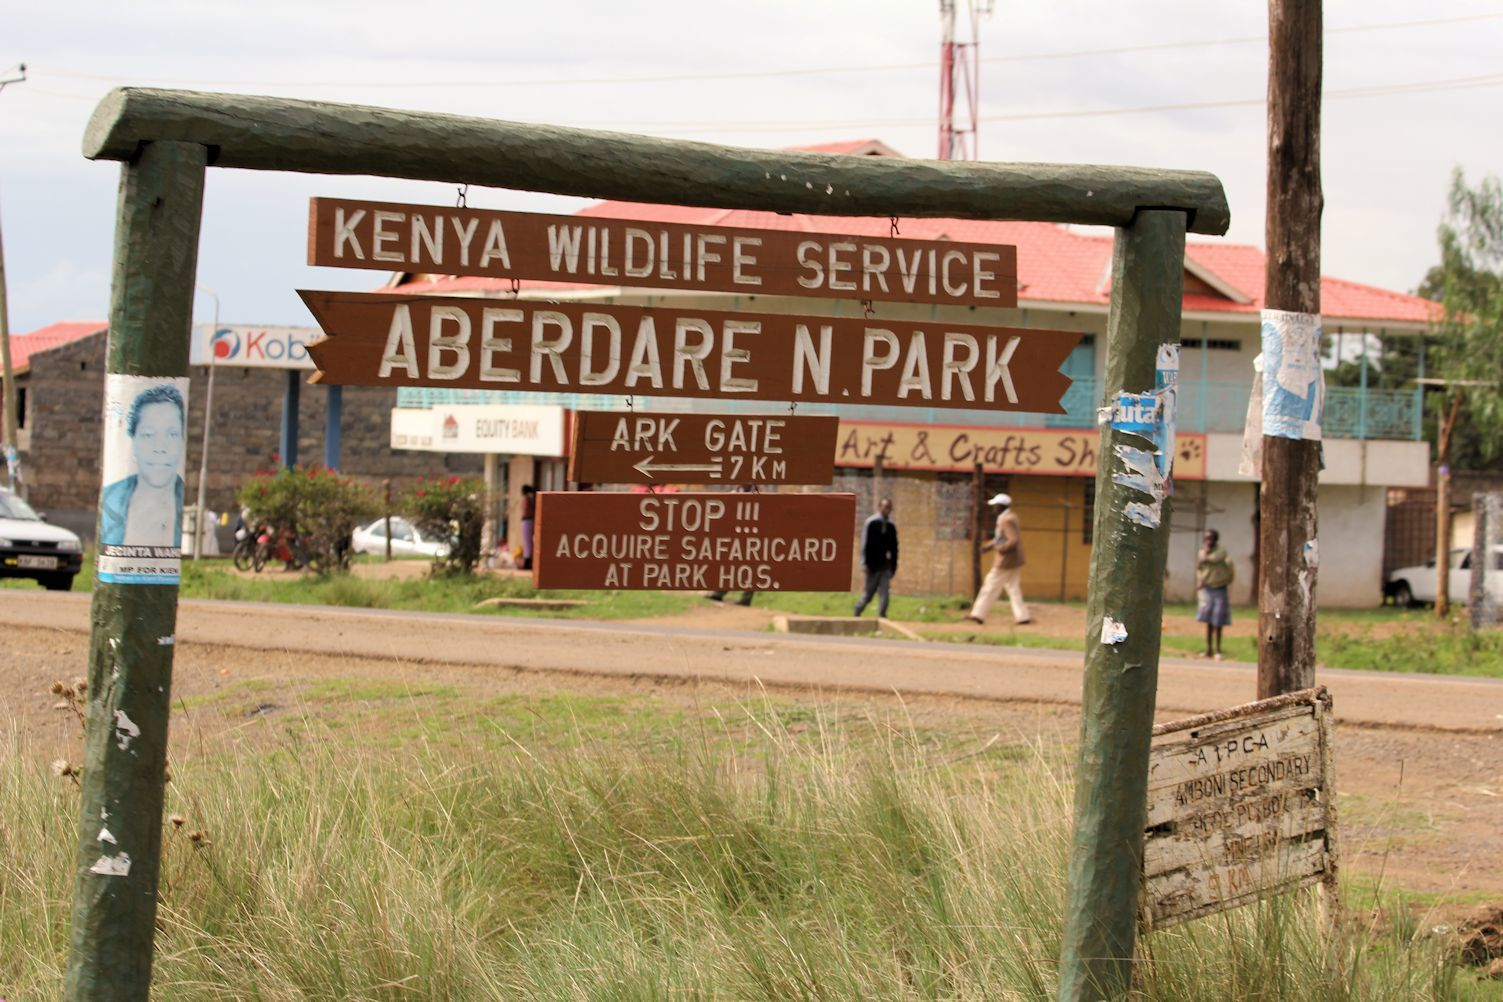 Aberdare National Park